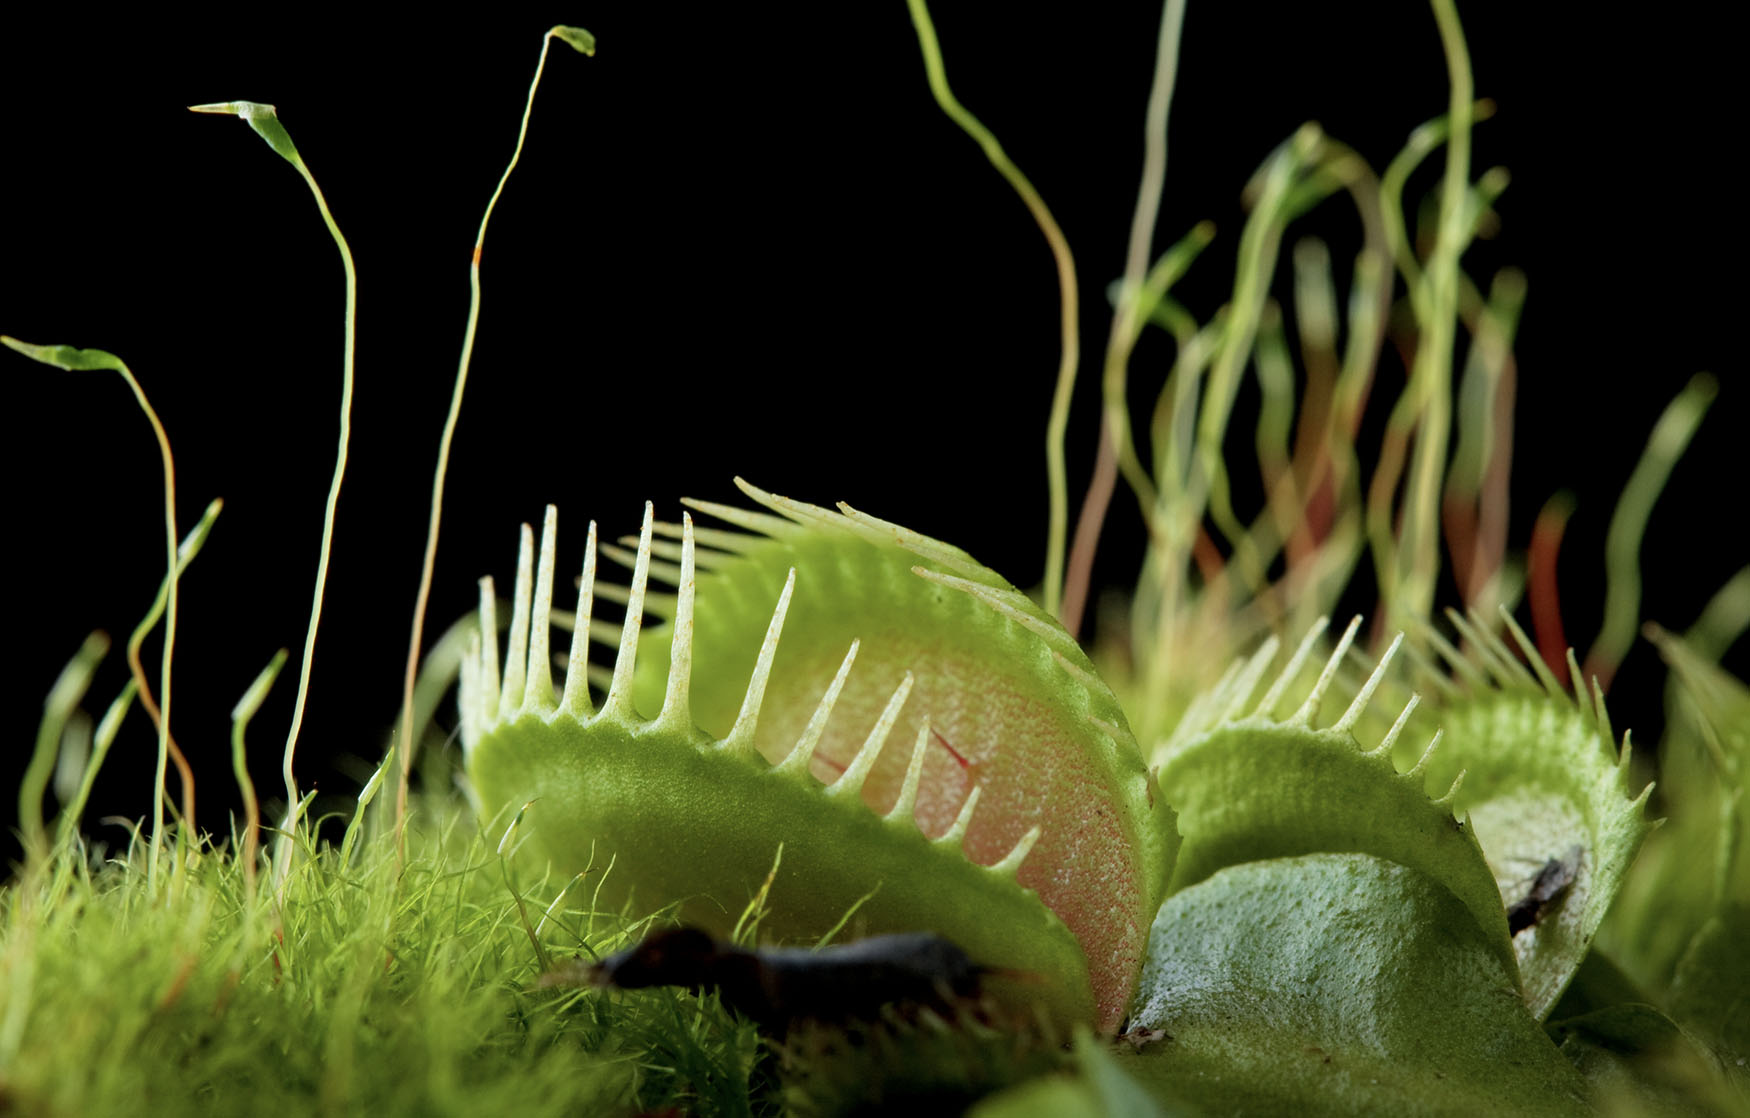 Venus flytraps are even crazier than we thought